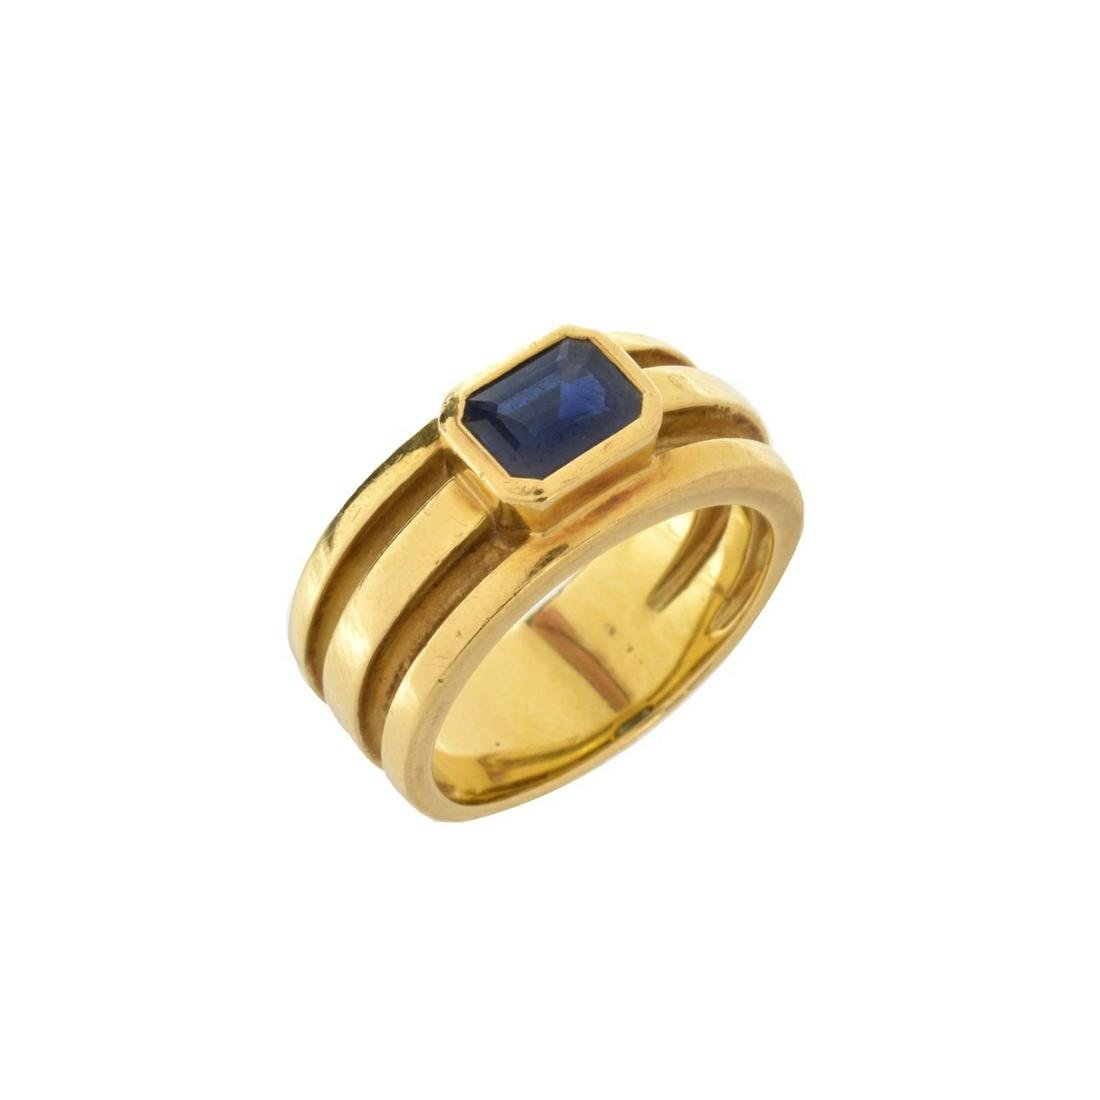 Tiffany & Co Sapphire and 18K Ring